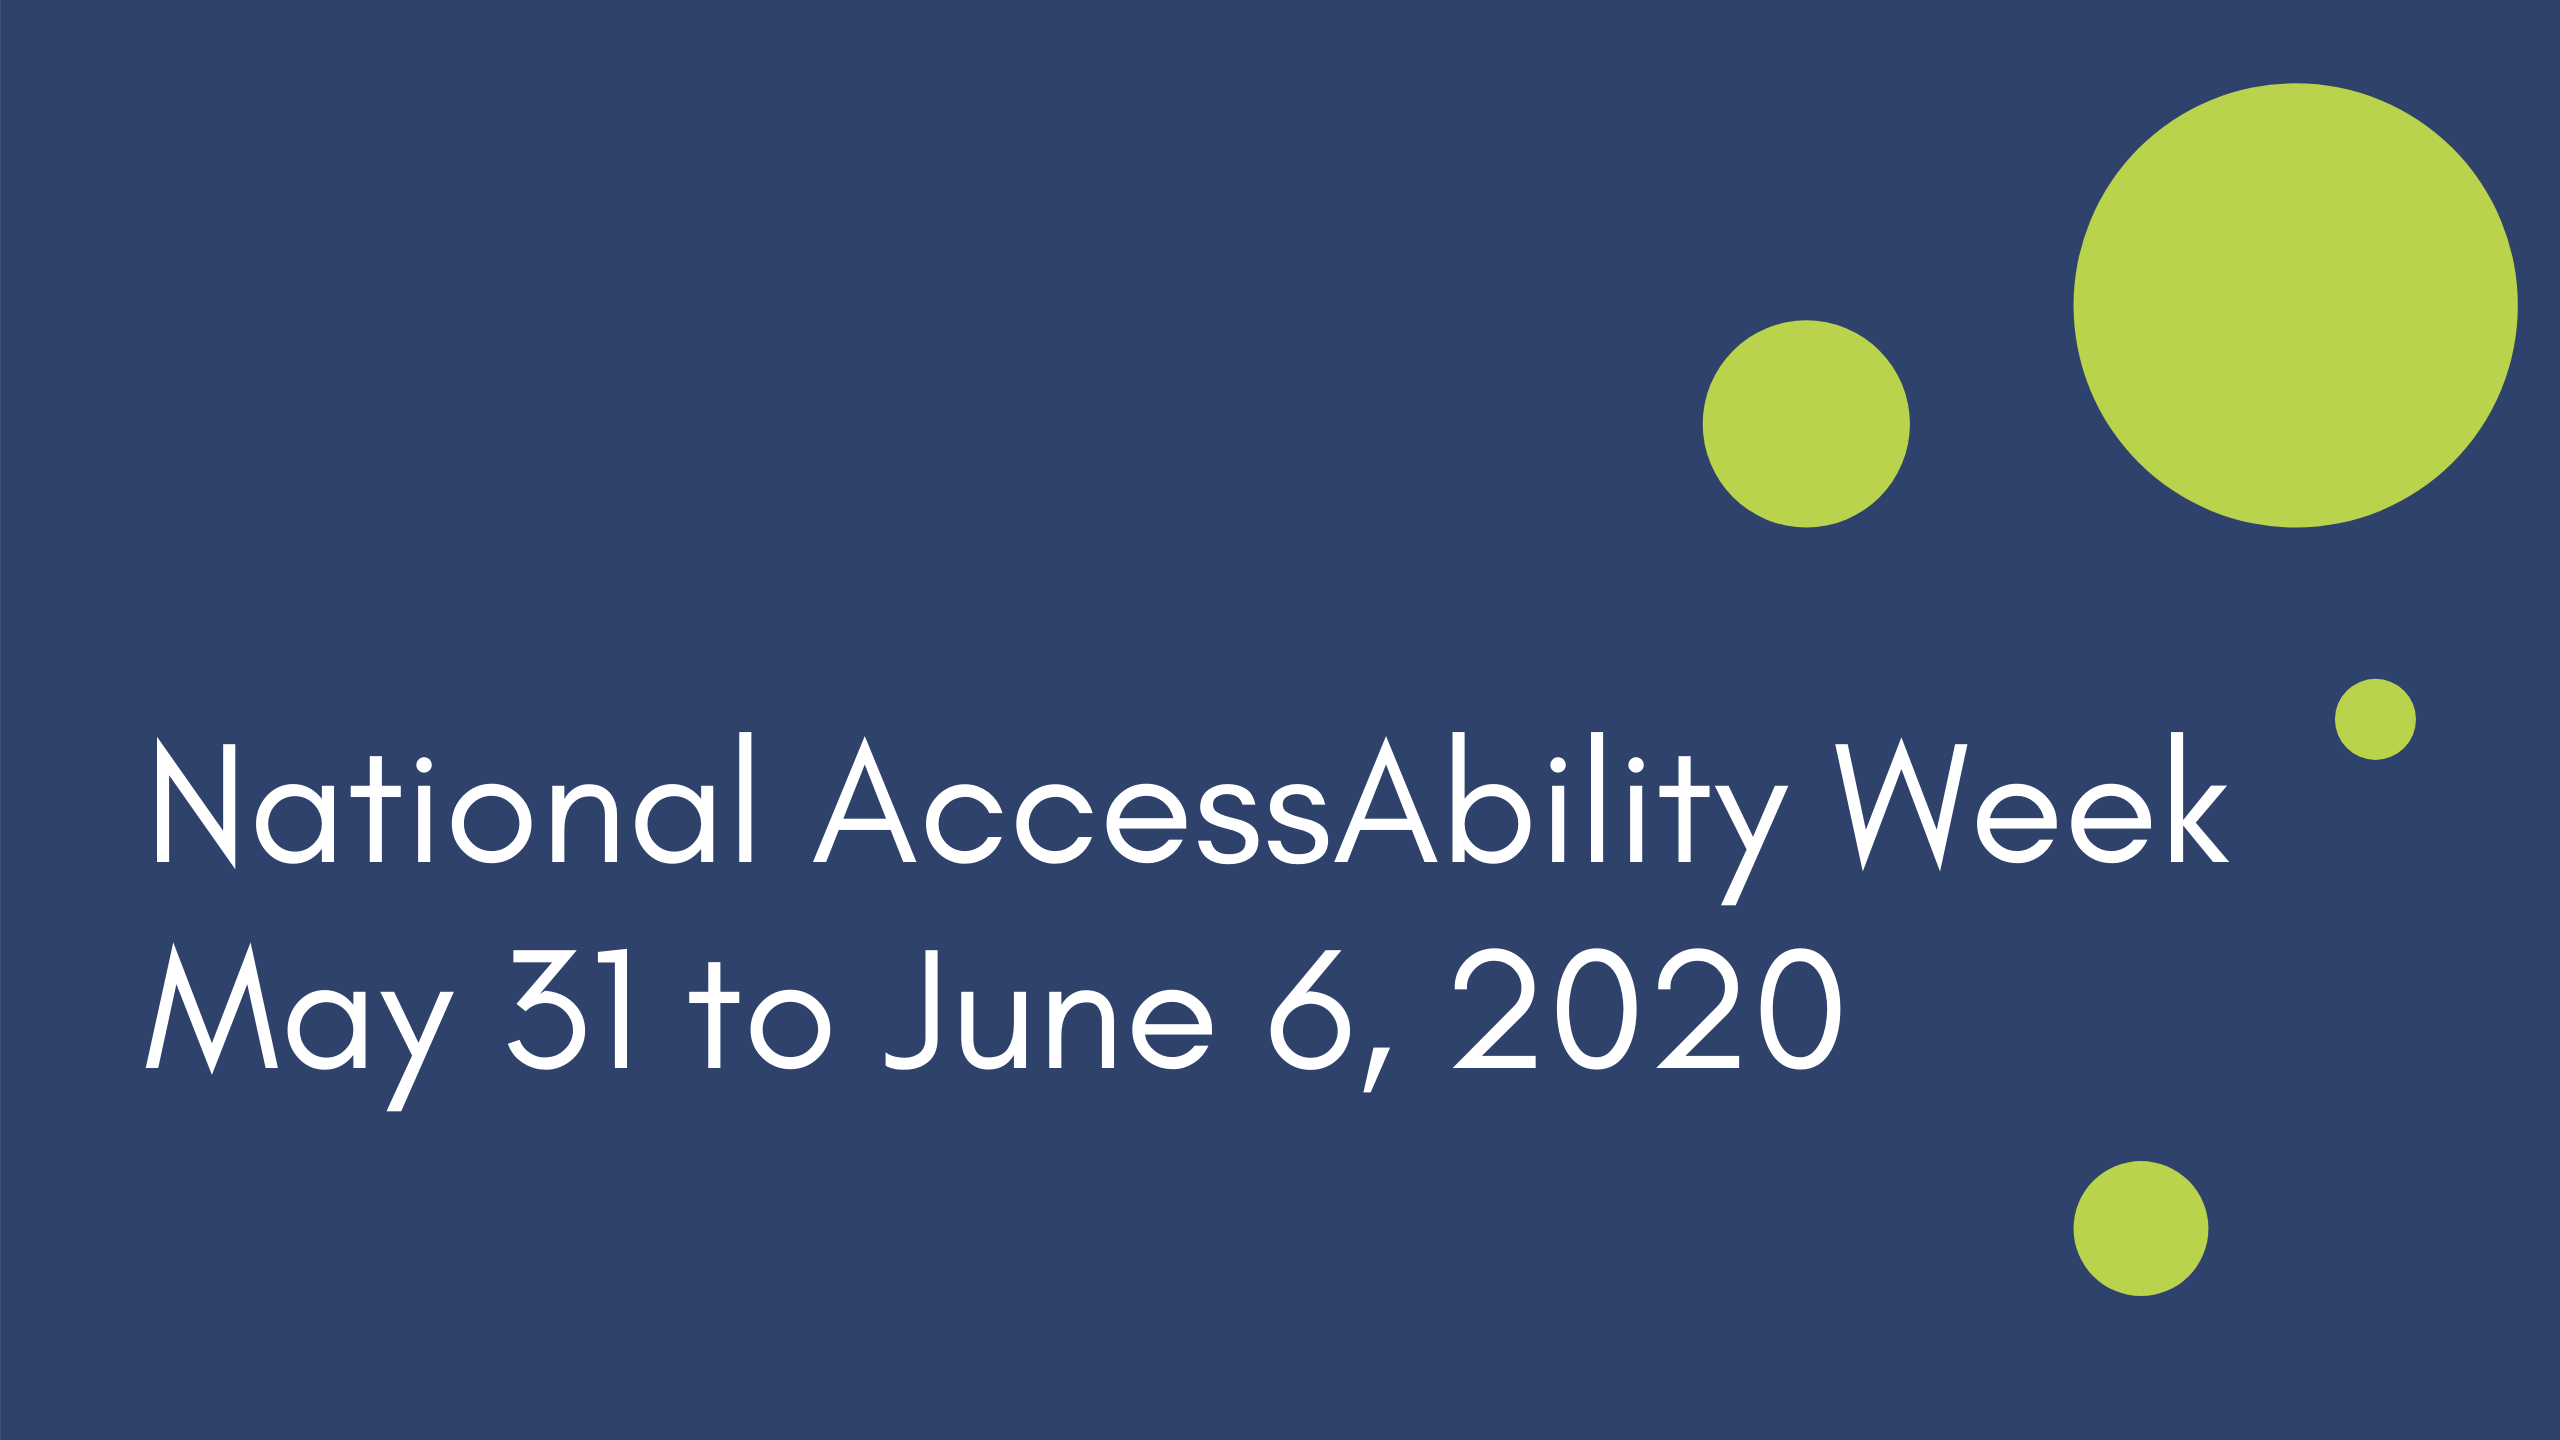 National AccessAbility Week 2020